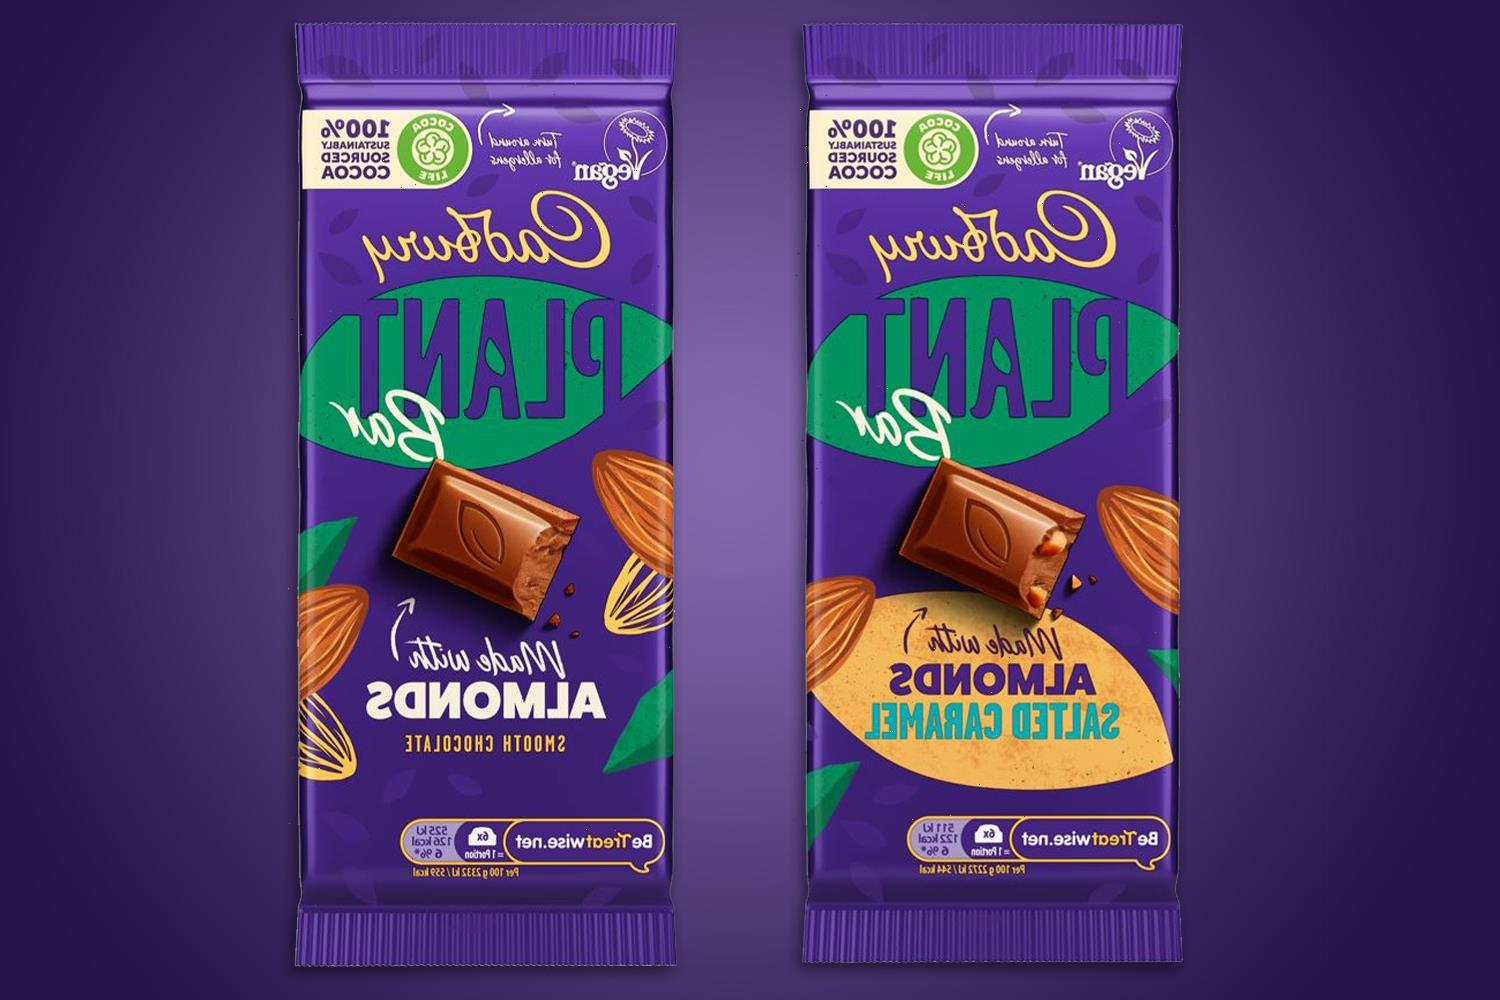 Cadbury launching a plant-based chocolate bar for vegans – but it's MORE calories and double the price of Dairy Milk